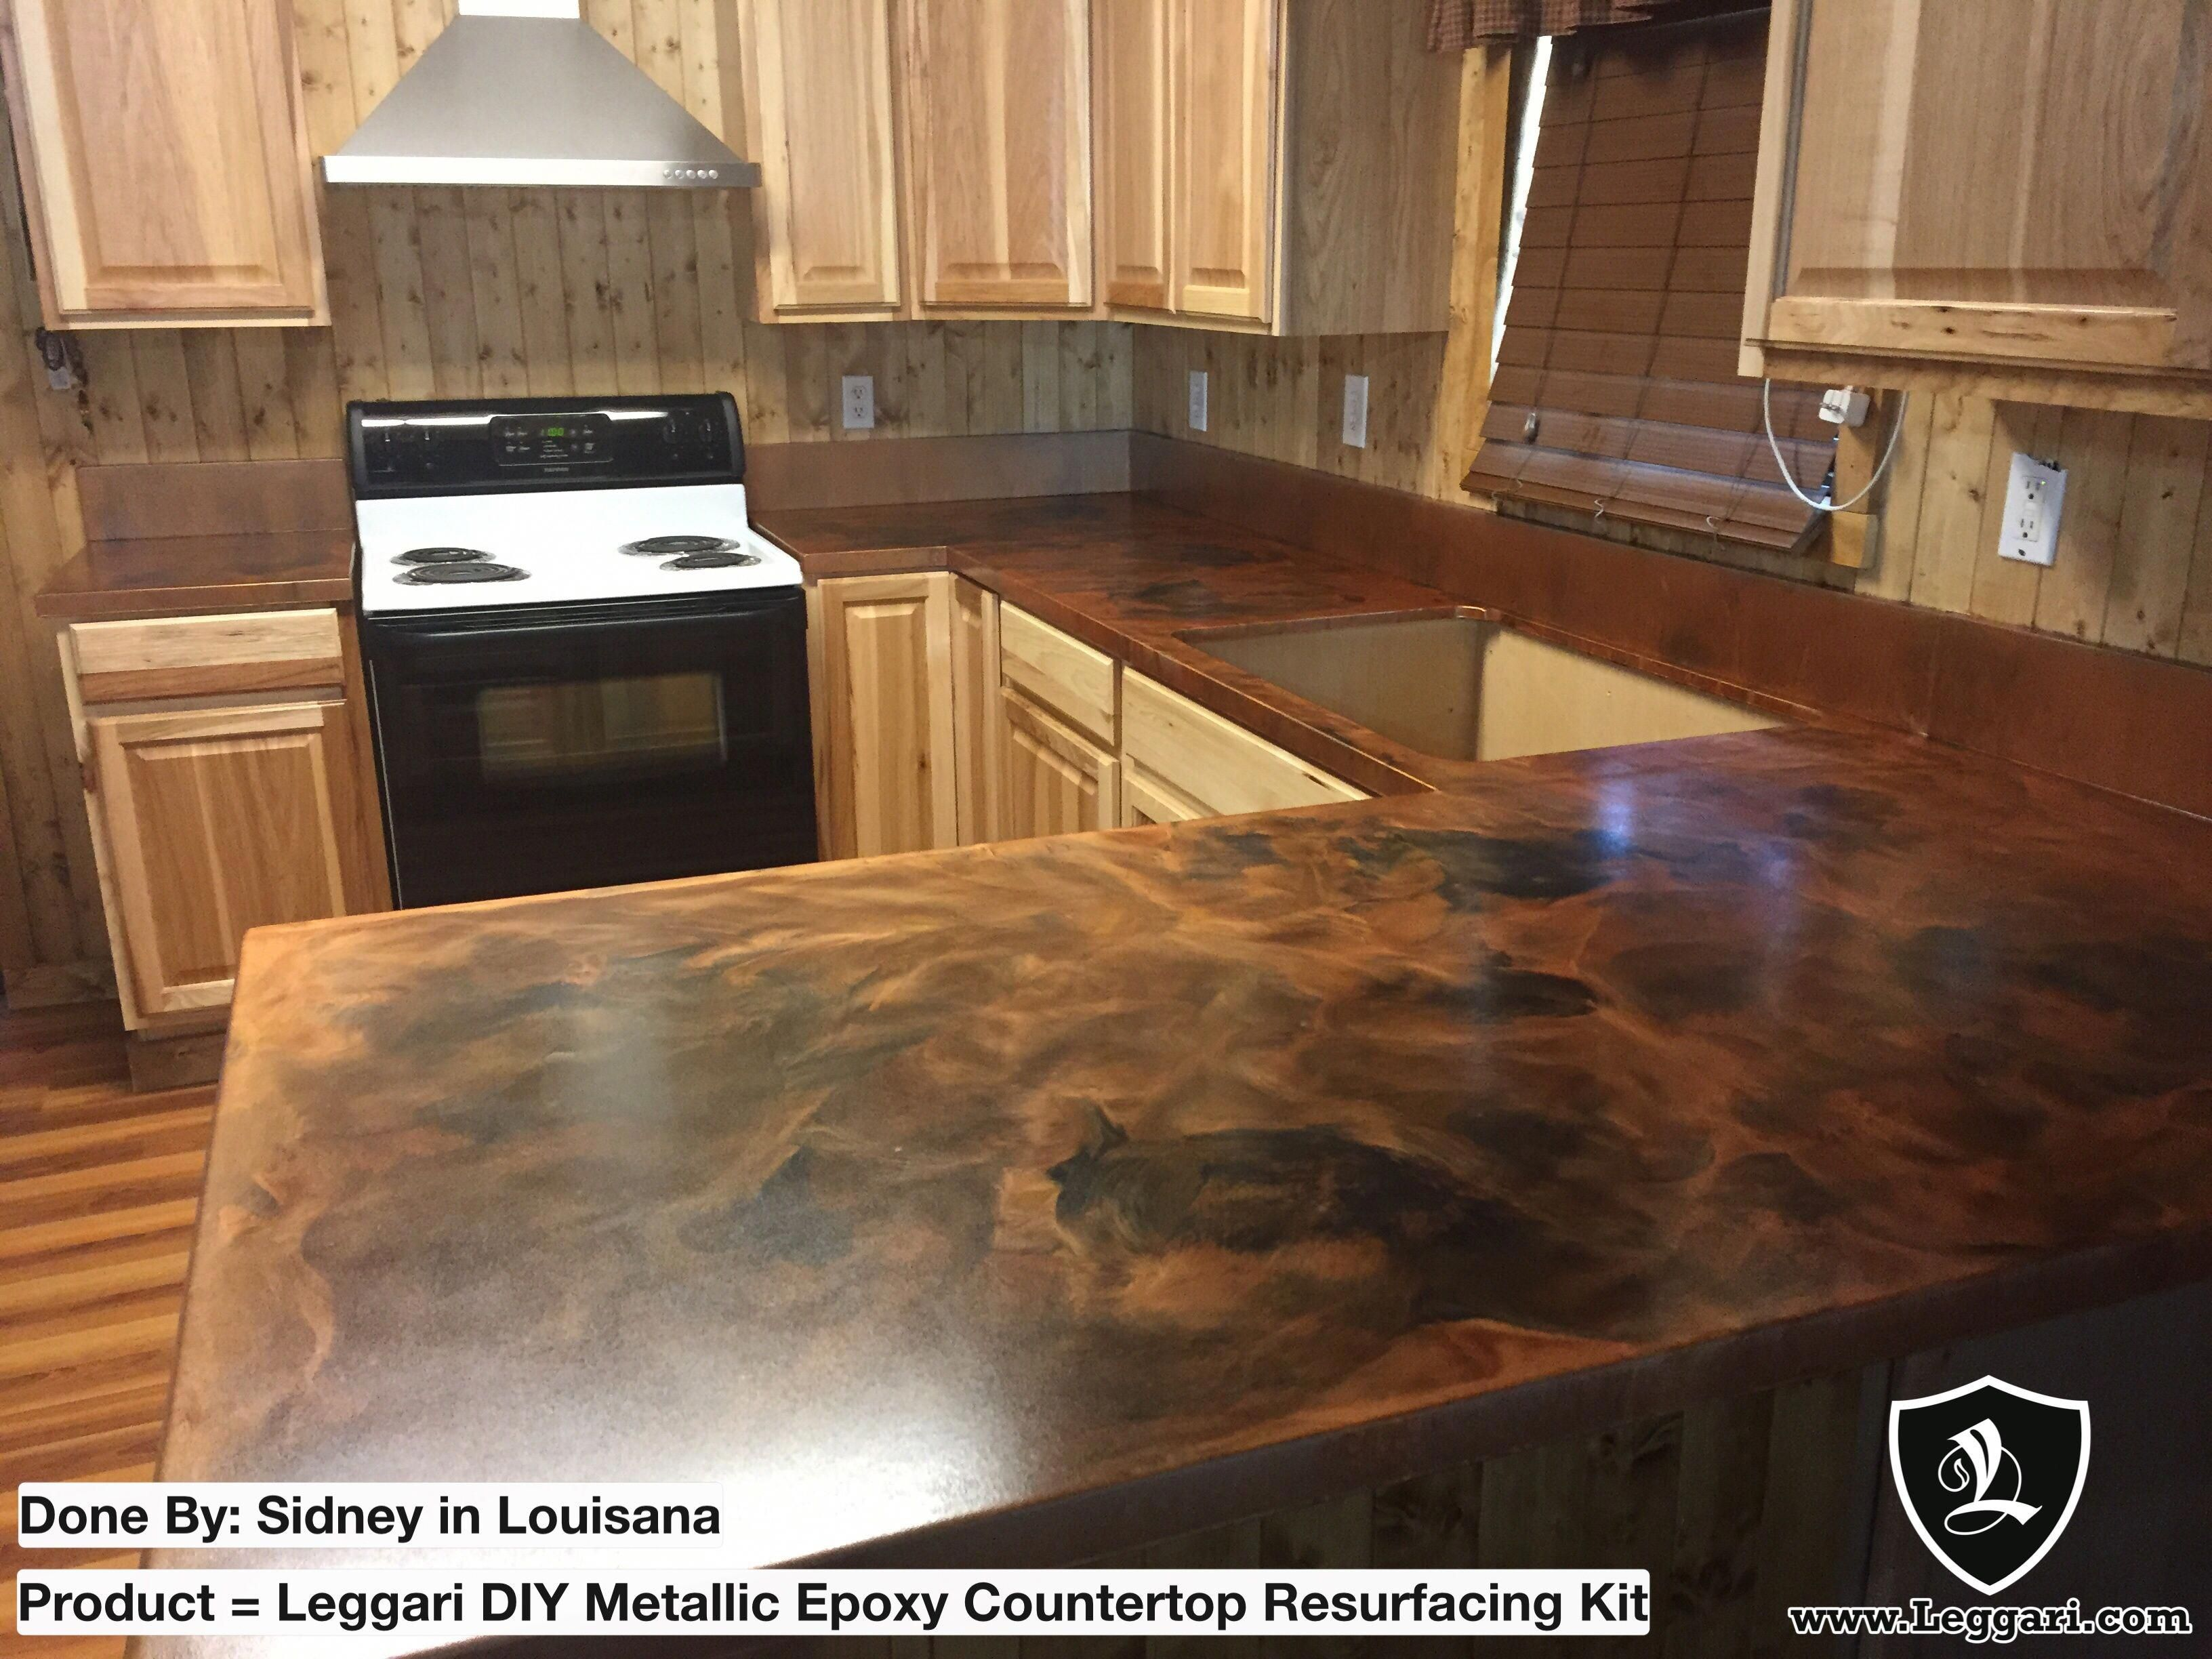 Furniture Shipping Cost Furniture7customerservice In 2020 Epoxy Countertop Countertop Kit